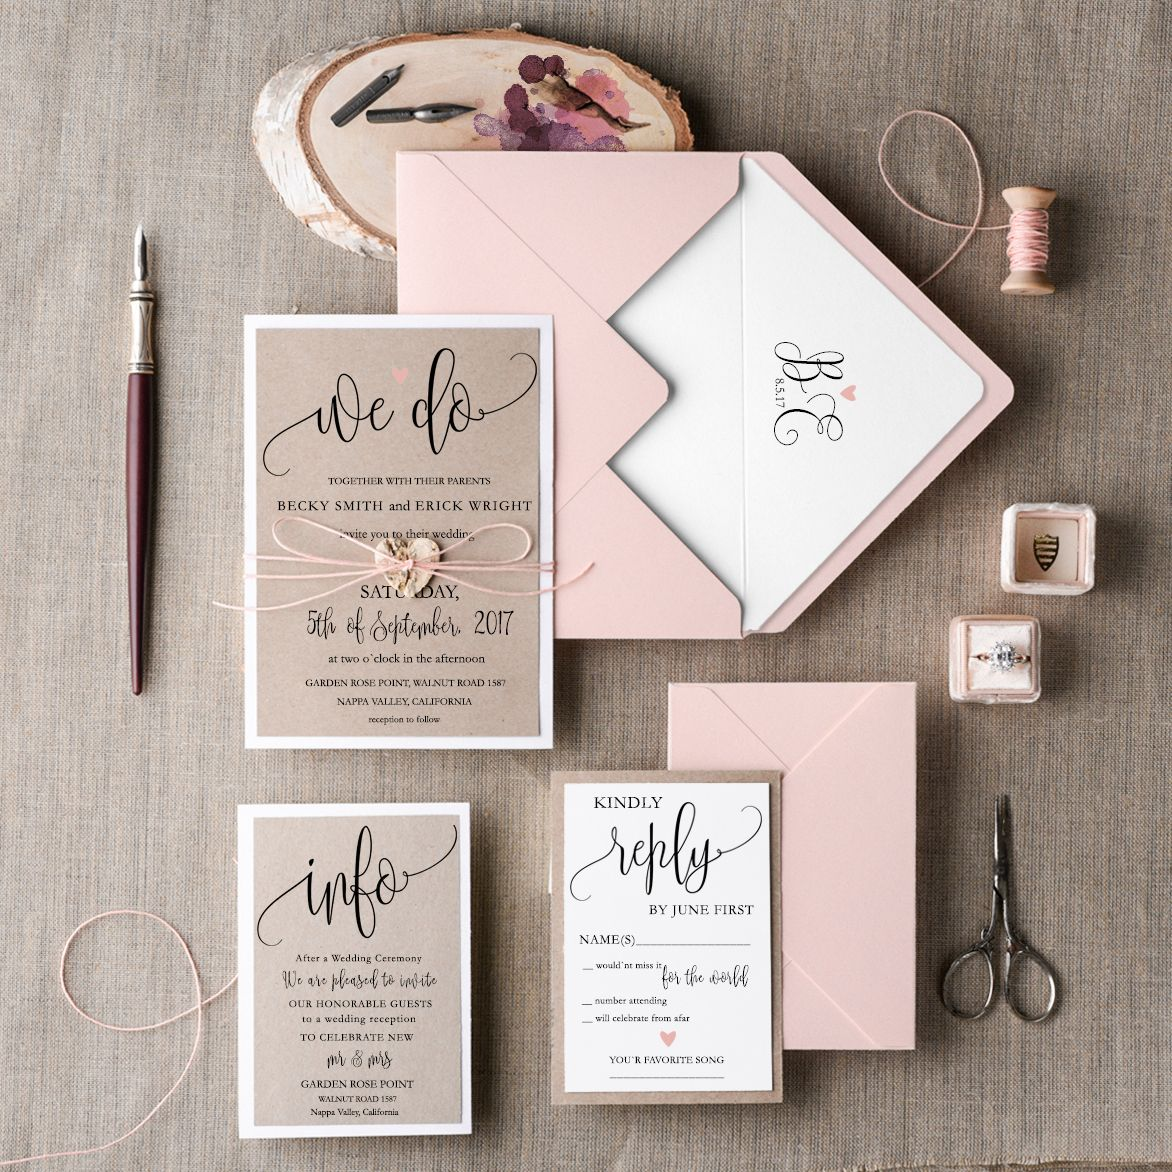 Cheap Rustic Wedding Invitations Pink Minimalist Stationery We Do Romantic Suite Wedding Invitation Kits Rustic Wedding Invitation Set Pink Wedding Invitations